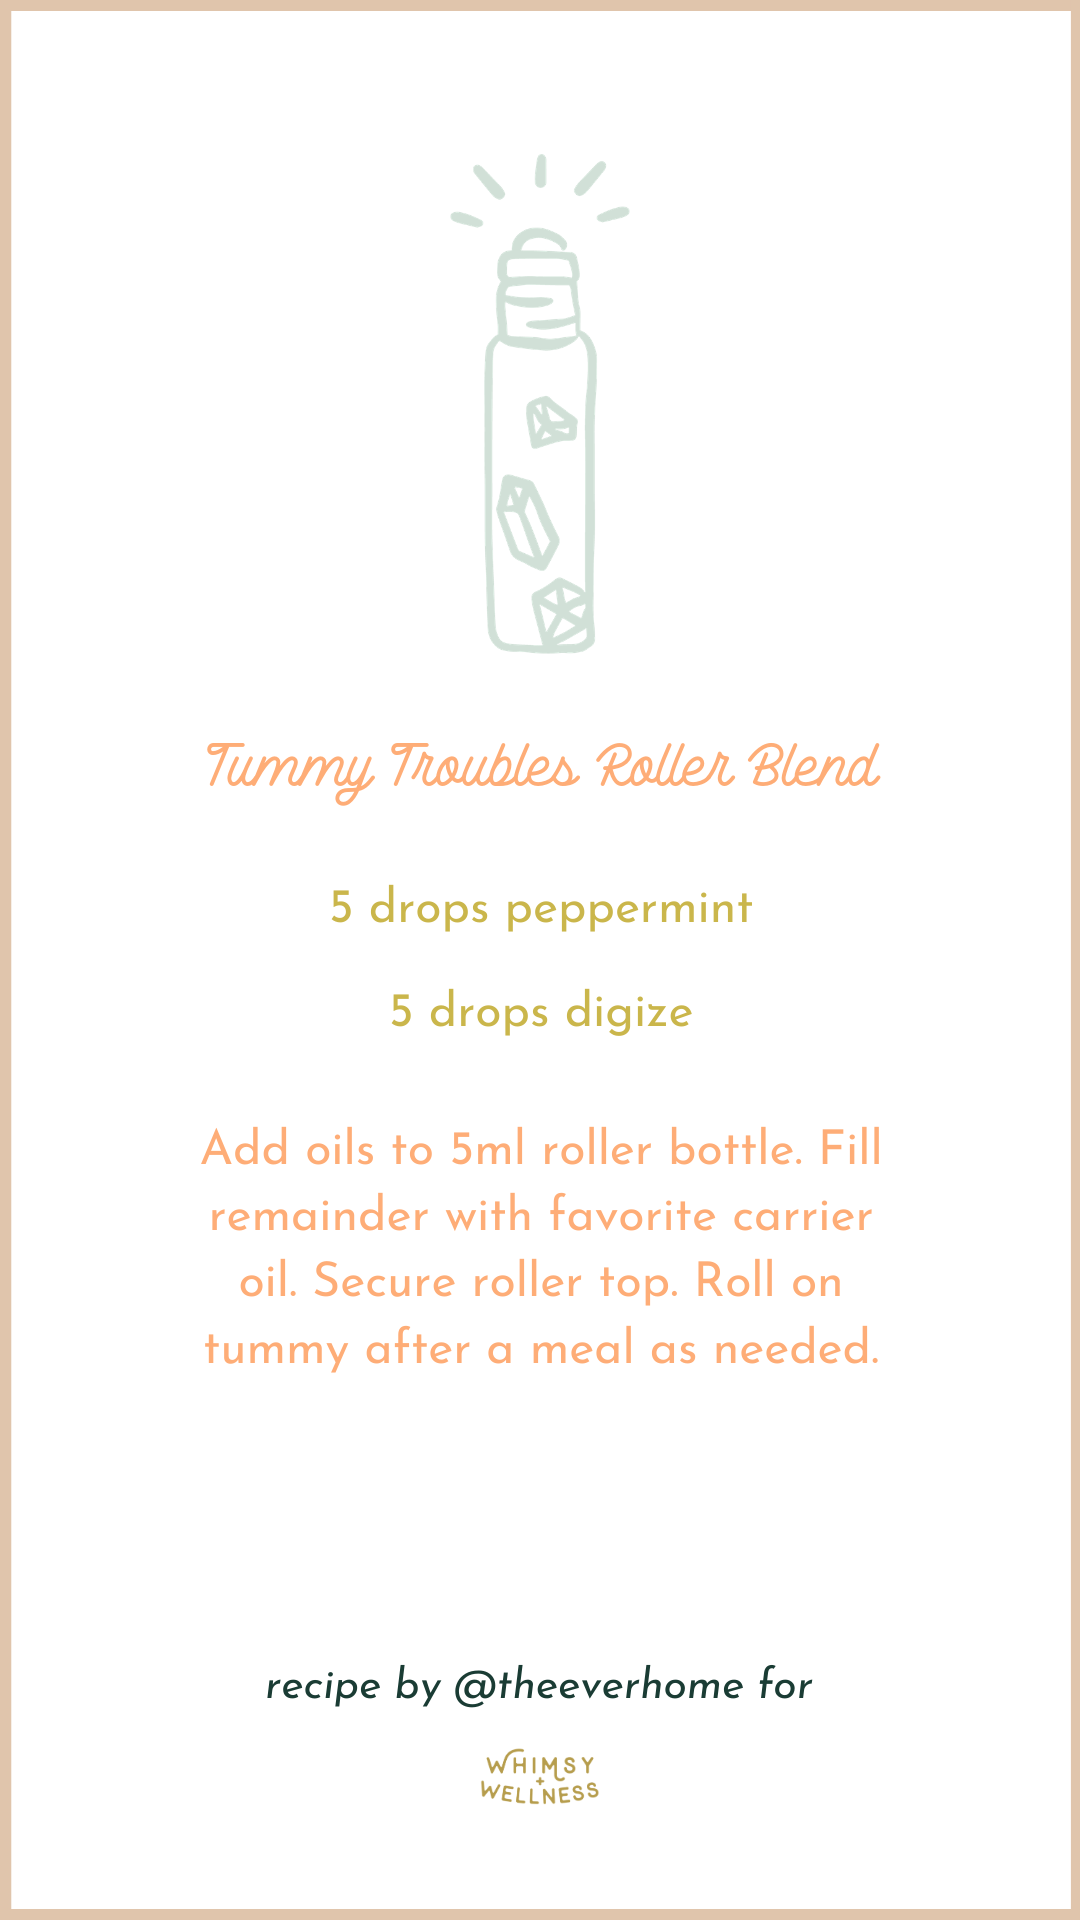 Tummy Troubles Roller Blend with young living essential oils Whimsy + Wellness